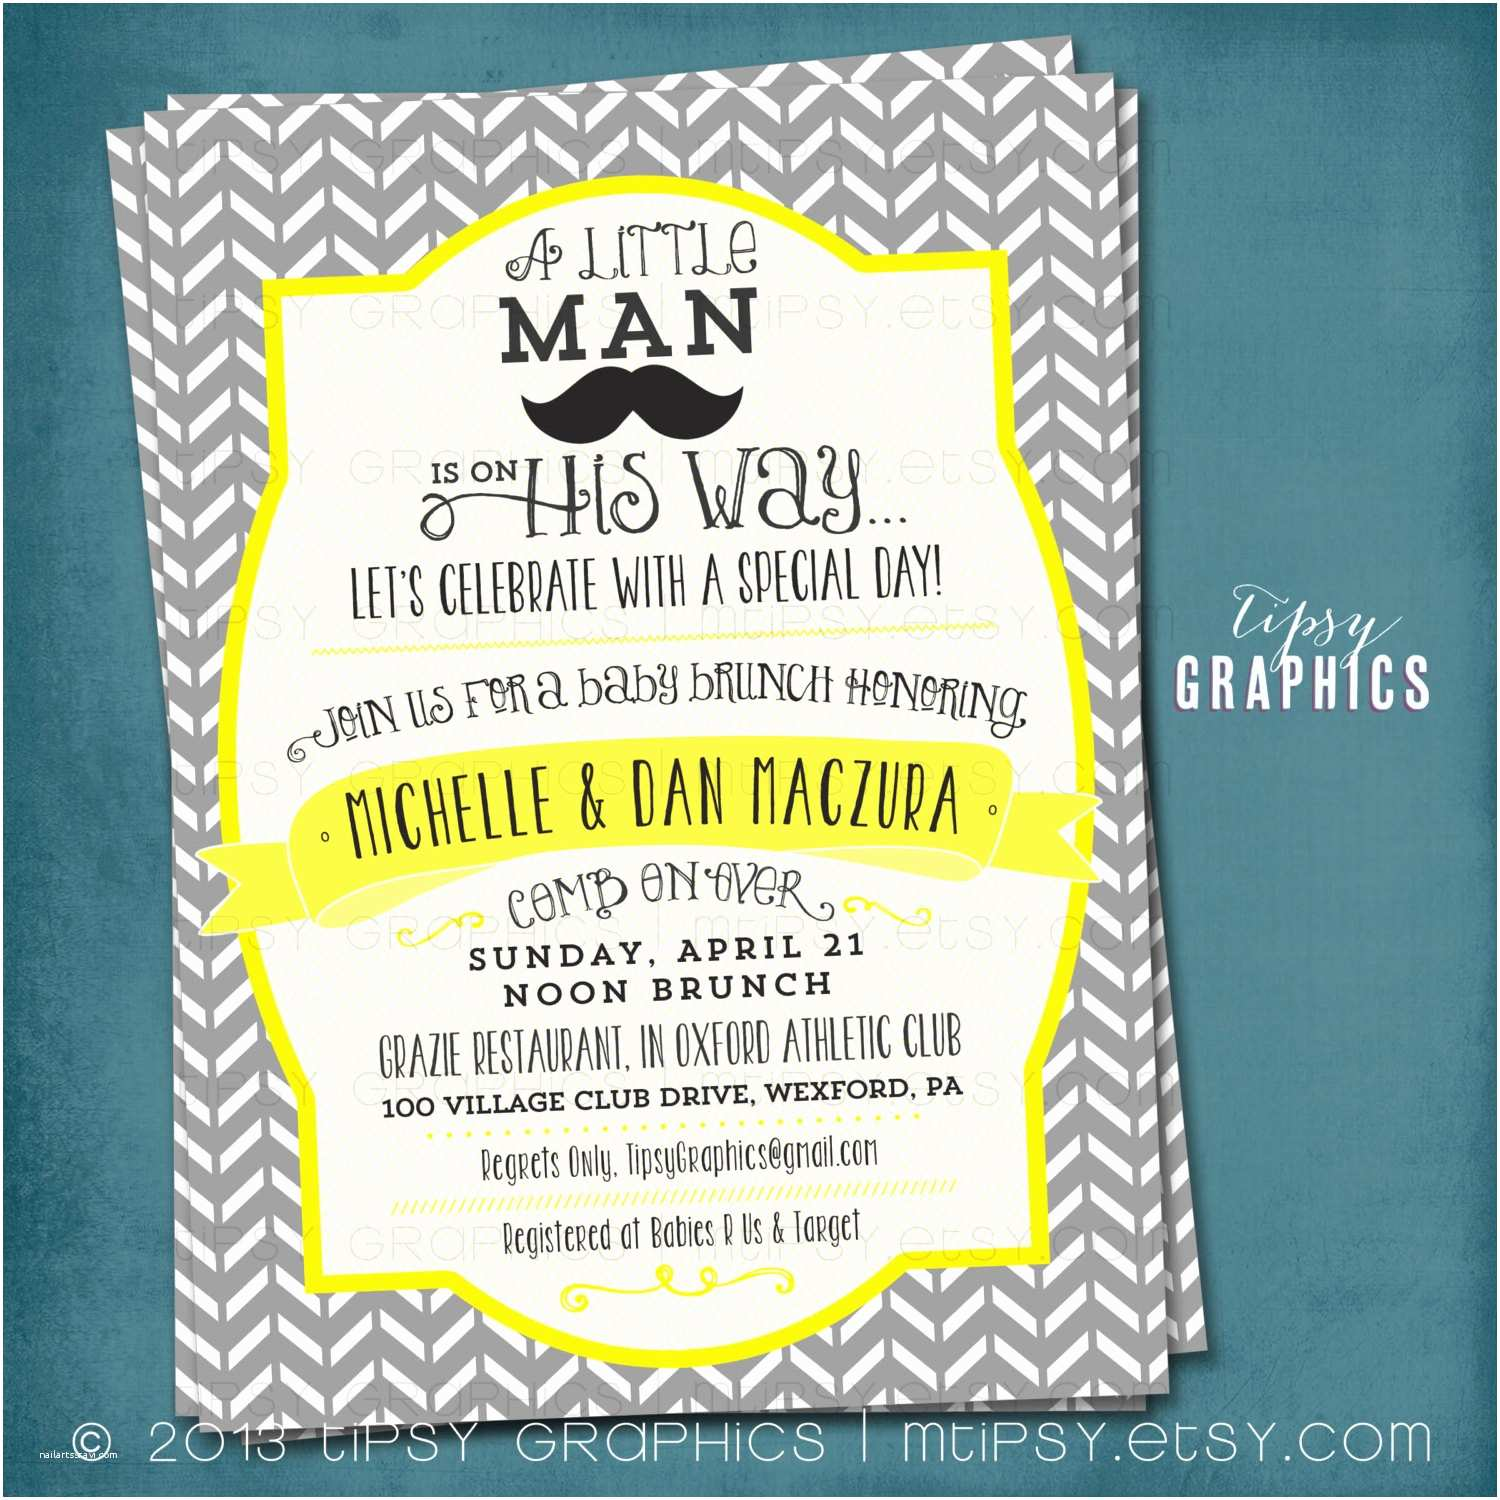 Jack and Jill Baby Shower Invitations Jack and Jill Baby Shower Wedding